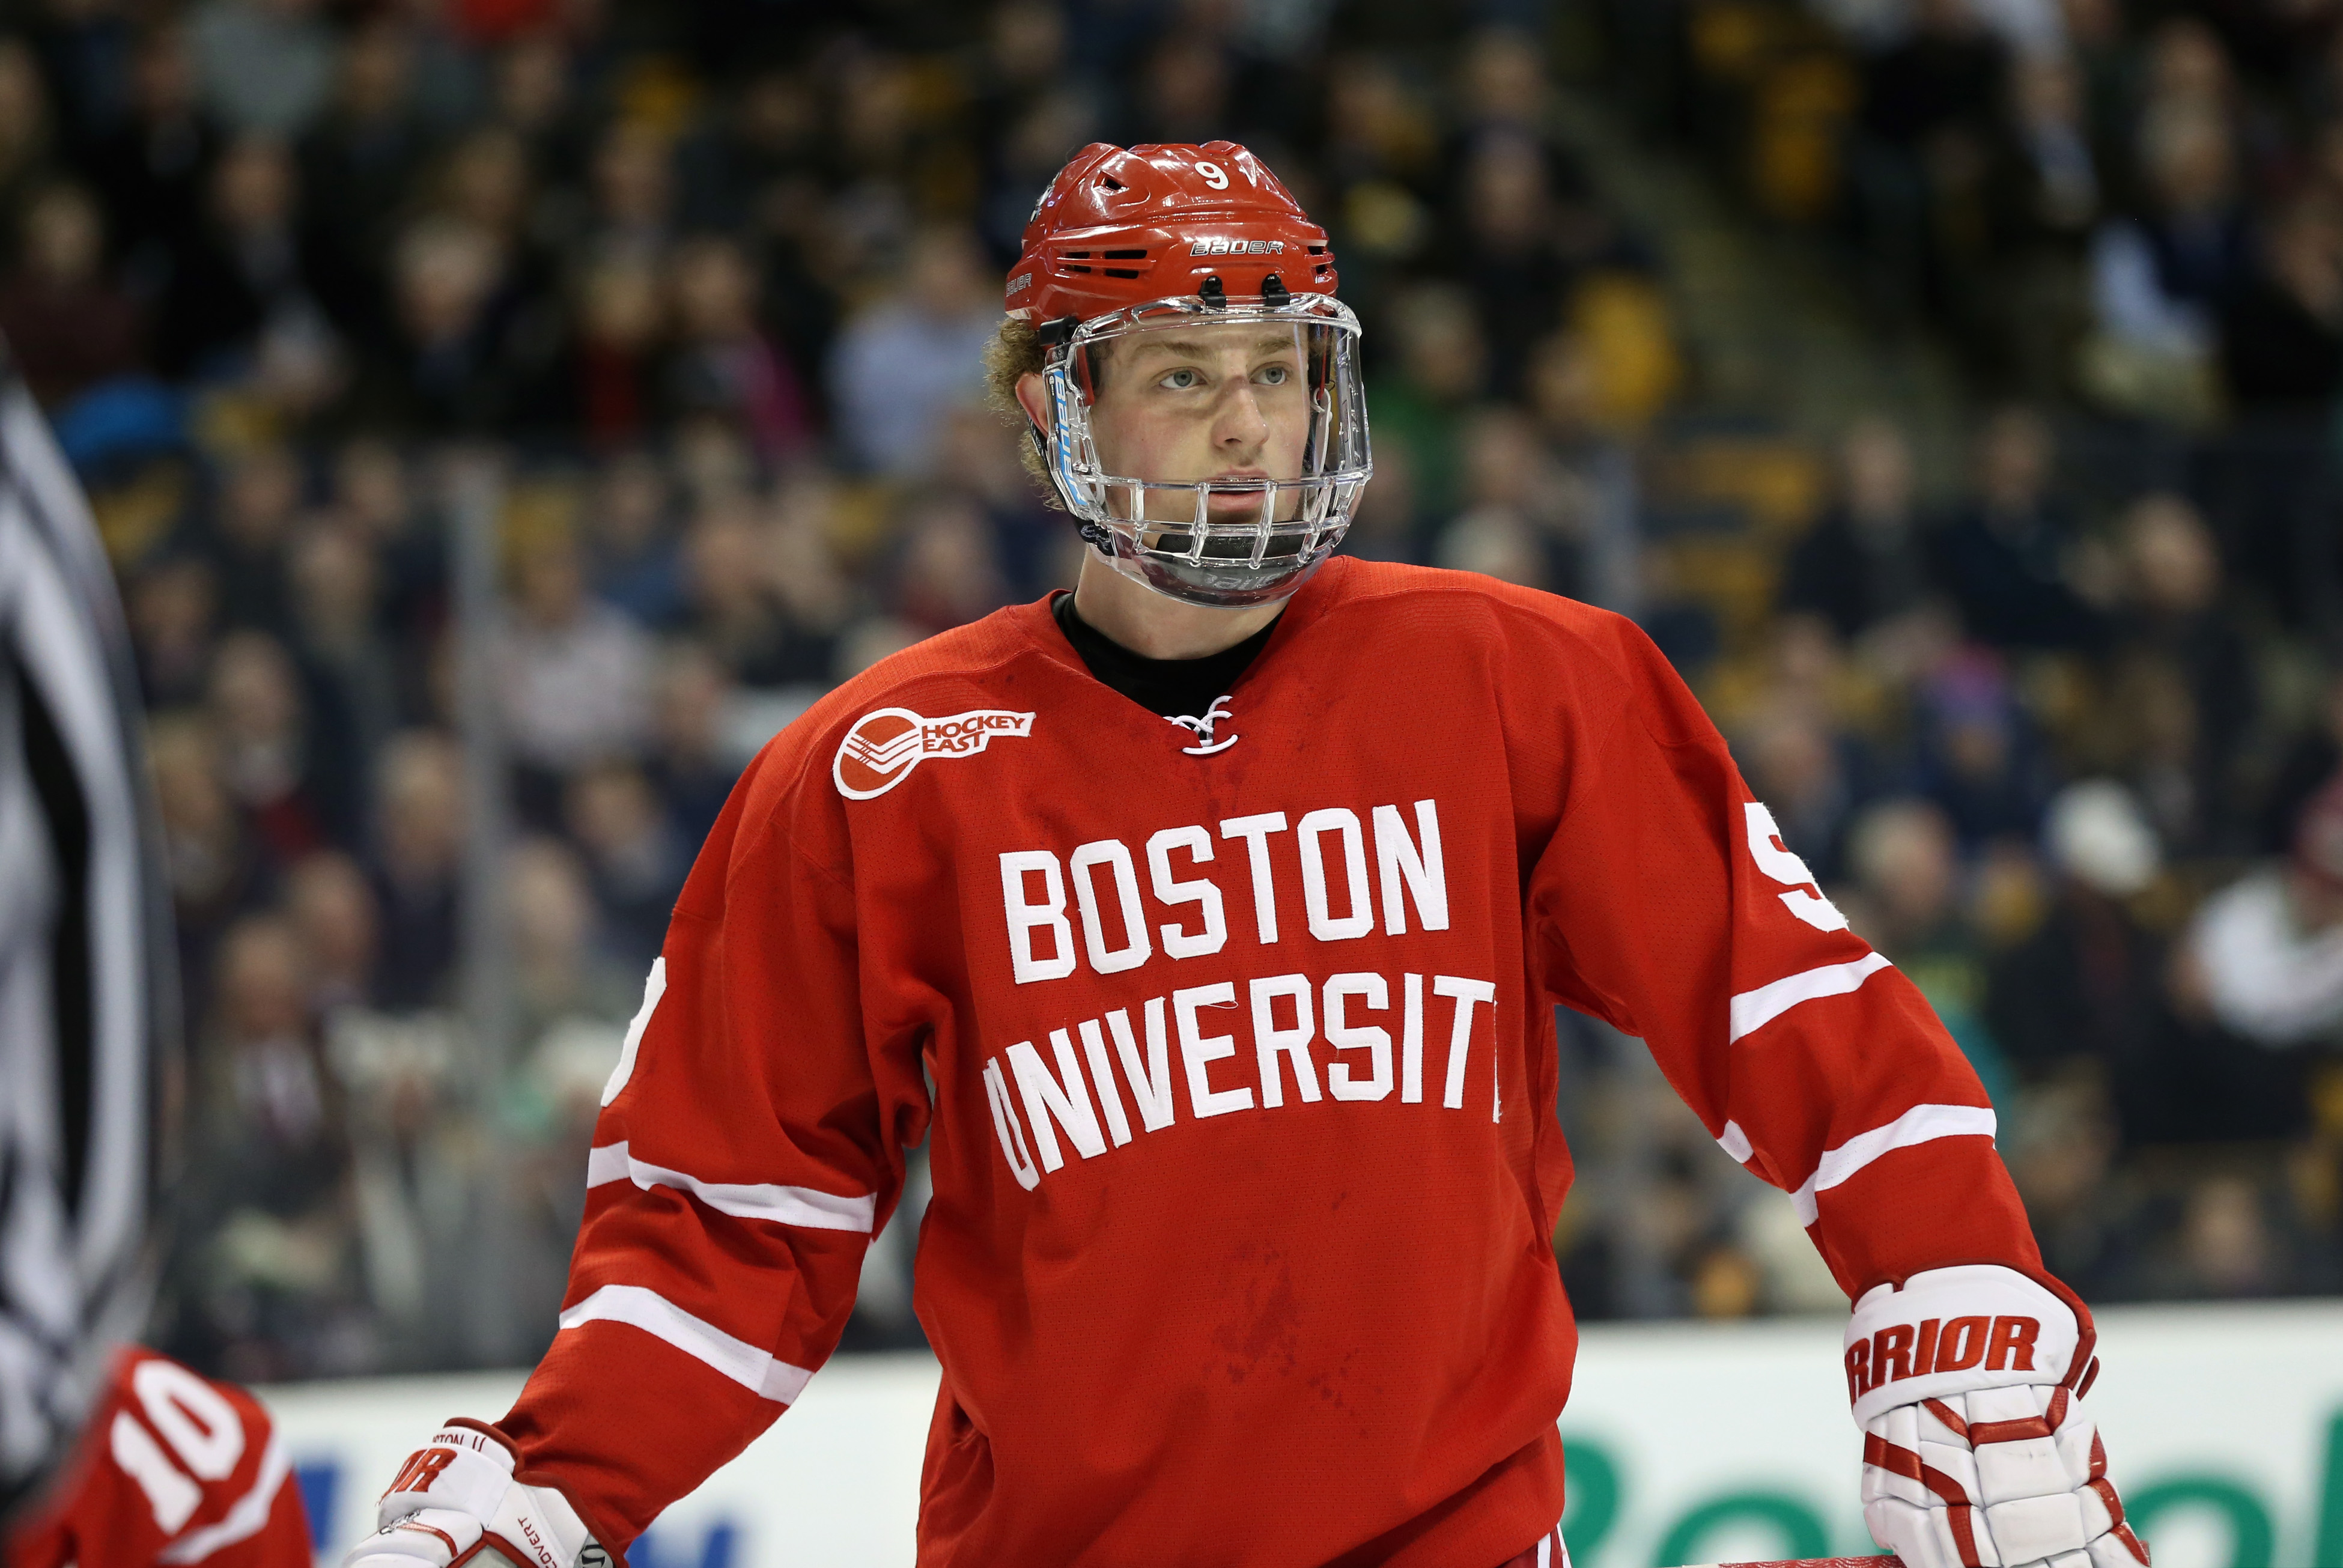 Jack Eichel of Boston University is widely considered as the best player in college hockey.